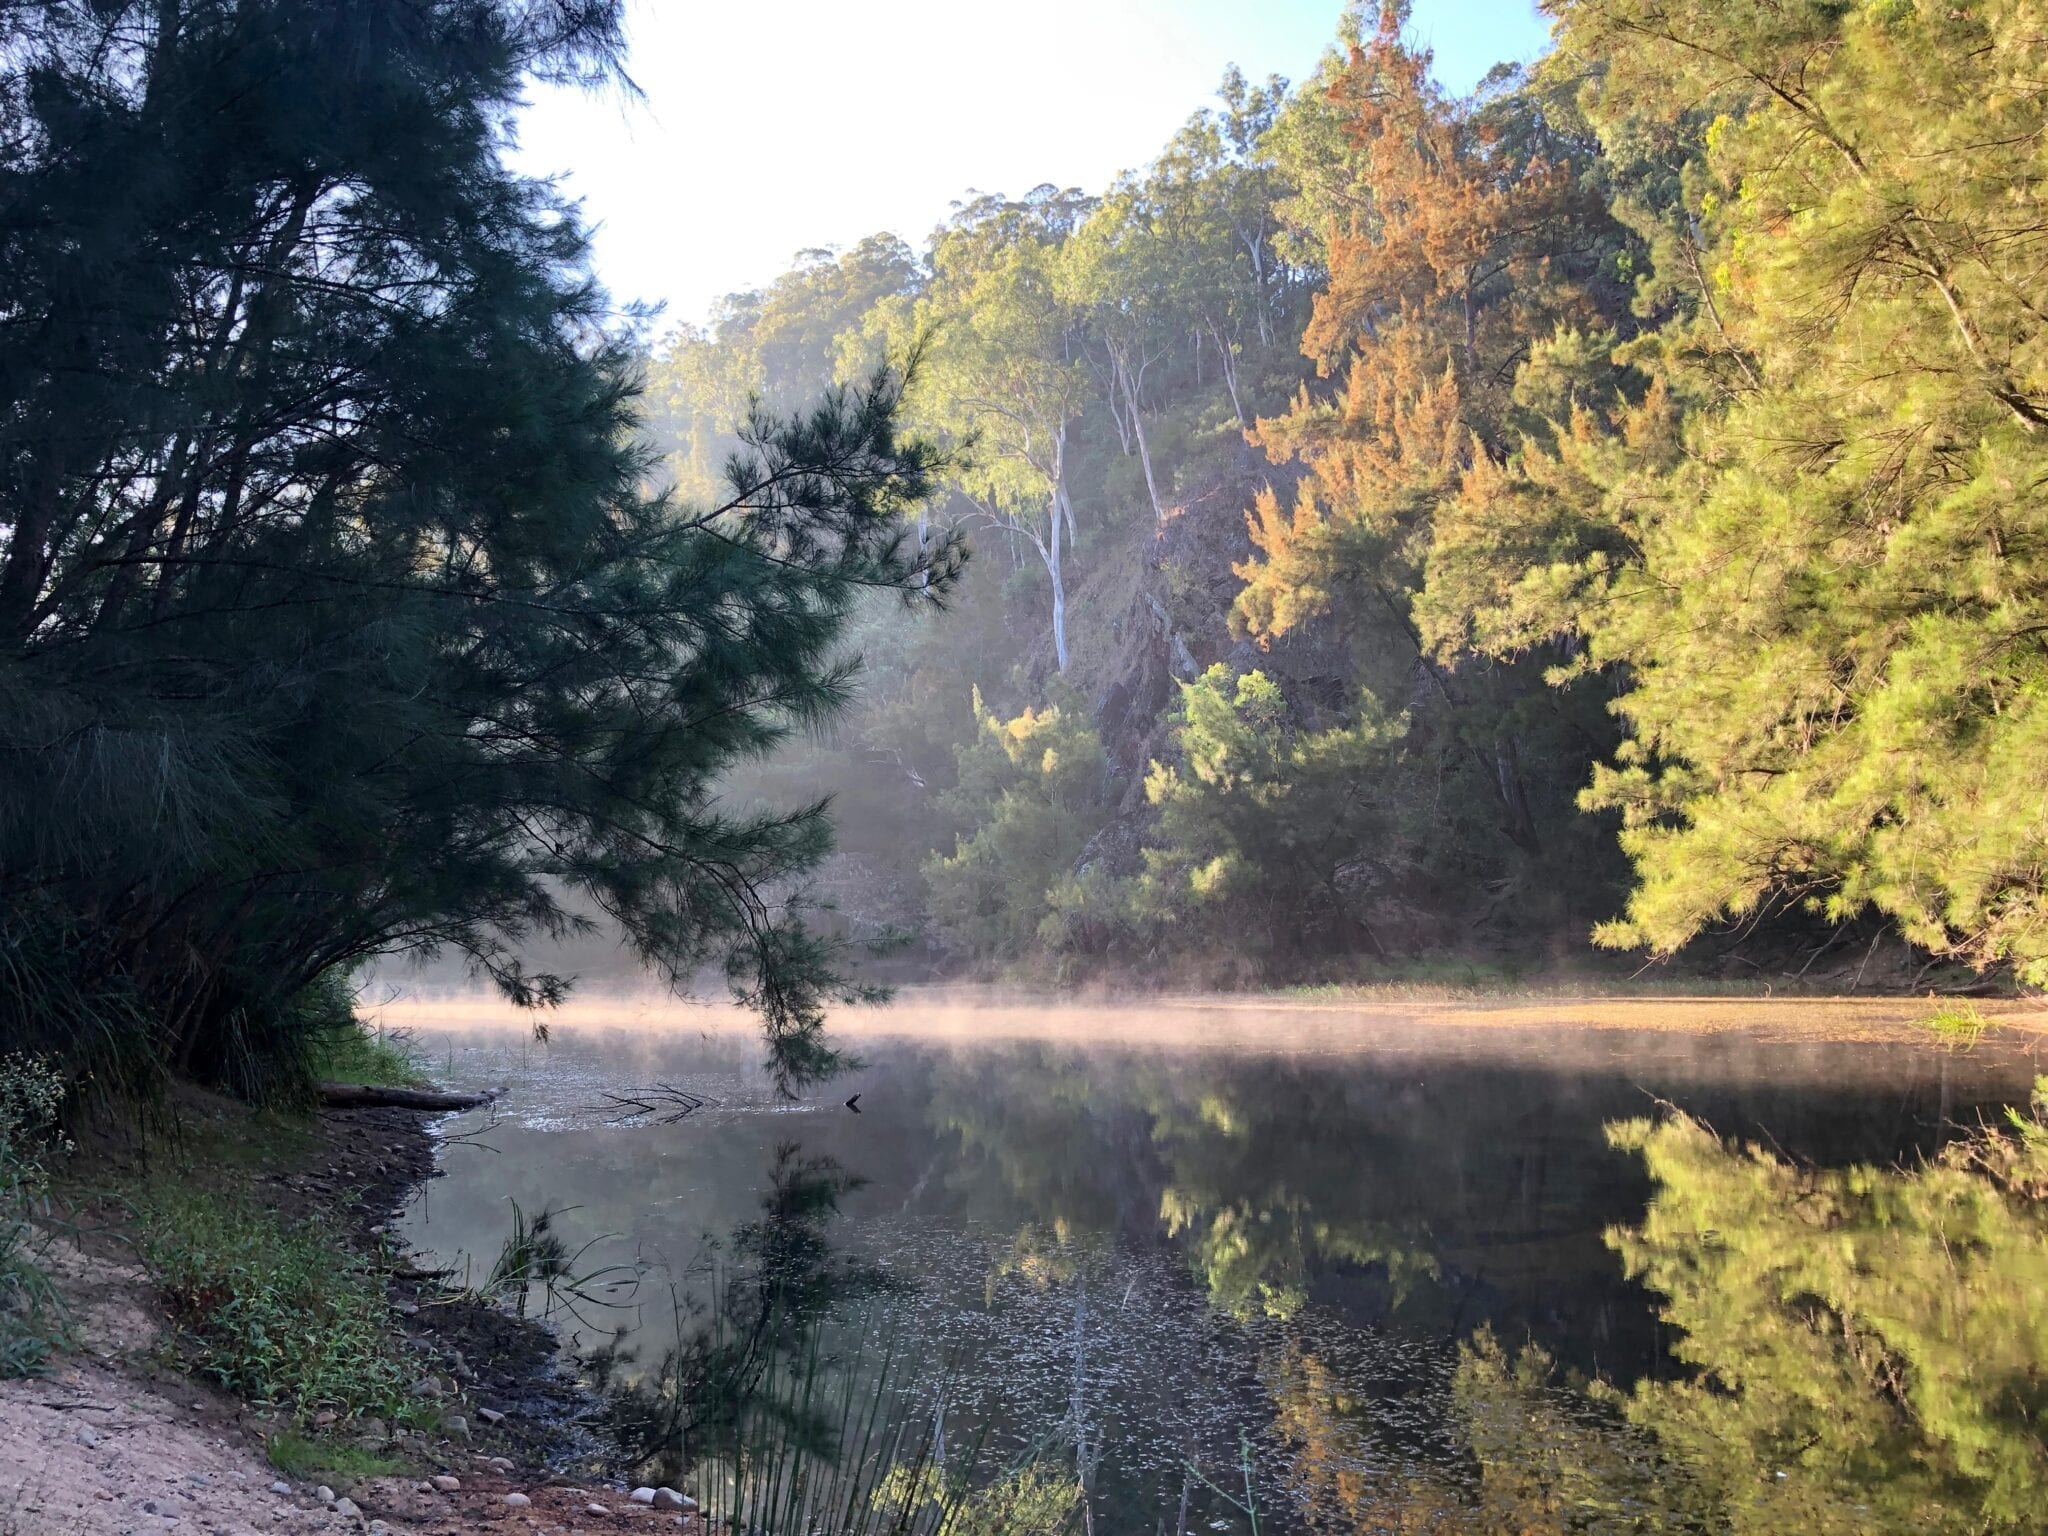 Morning mist on Deua River, Dry Creek Camping Area. Bush camping near Canberra.